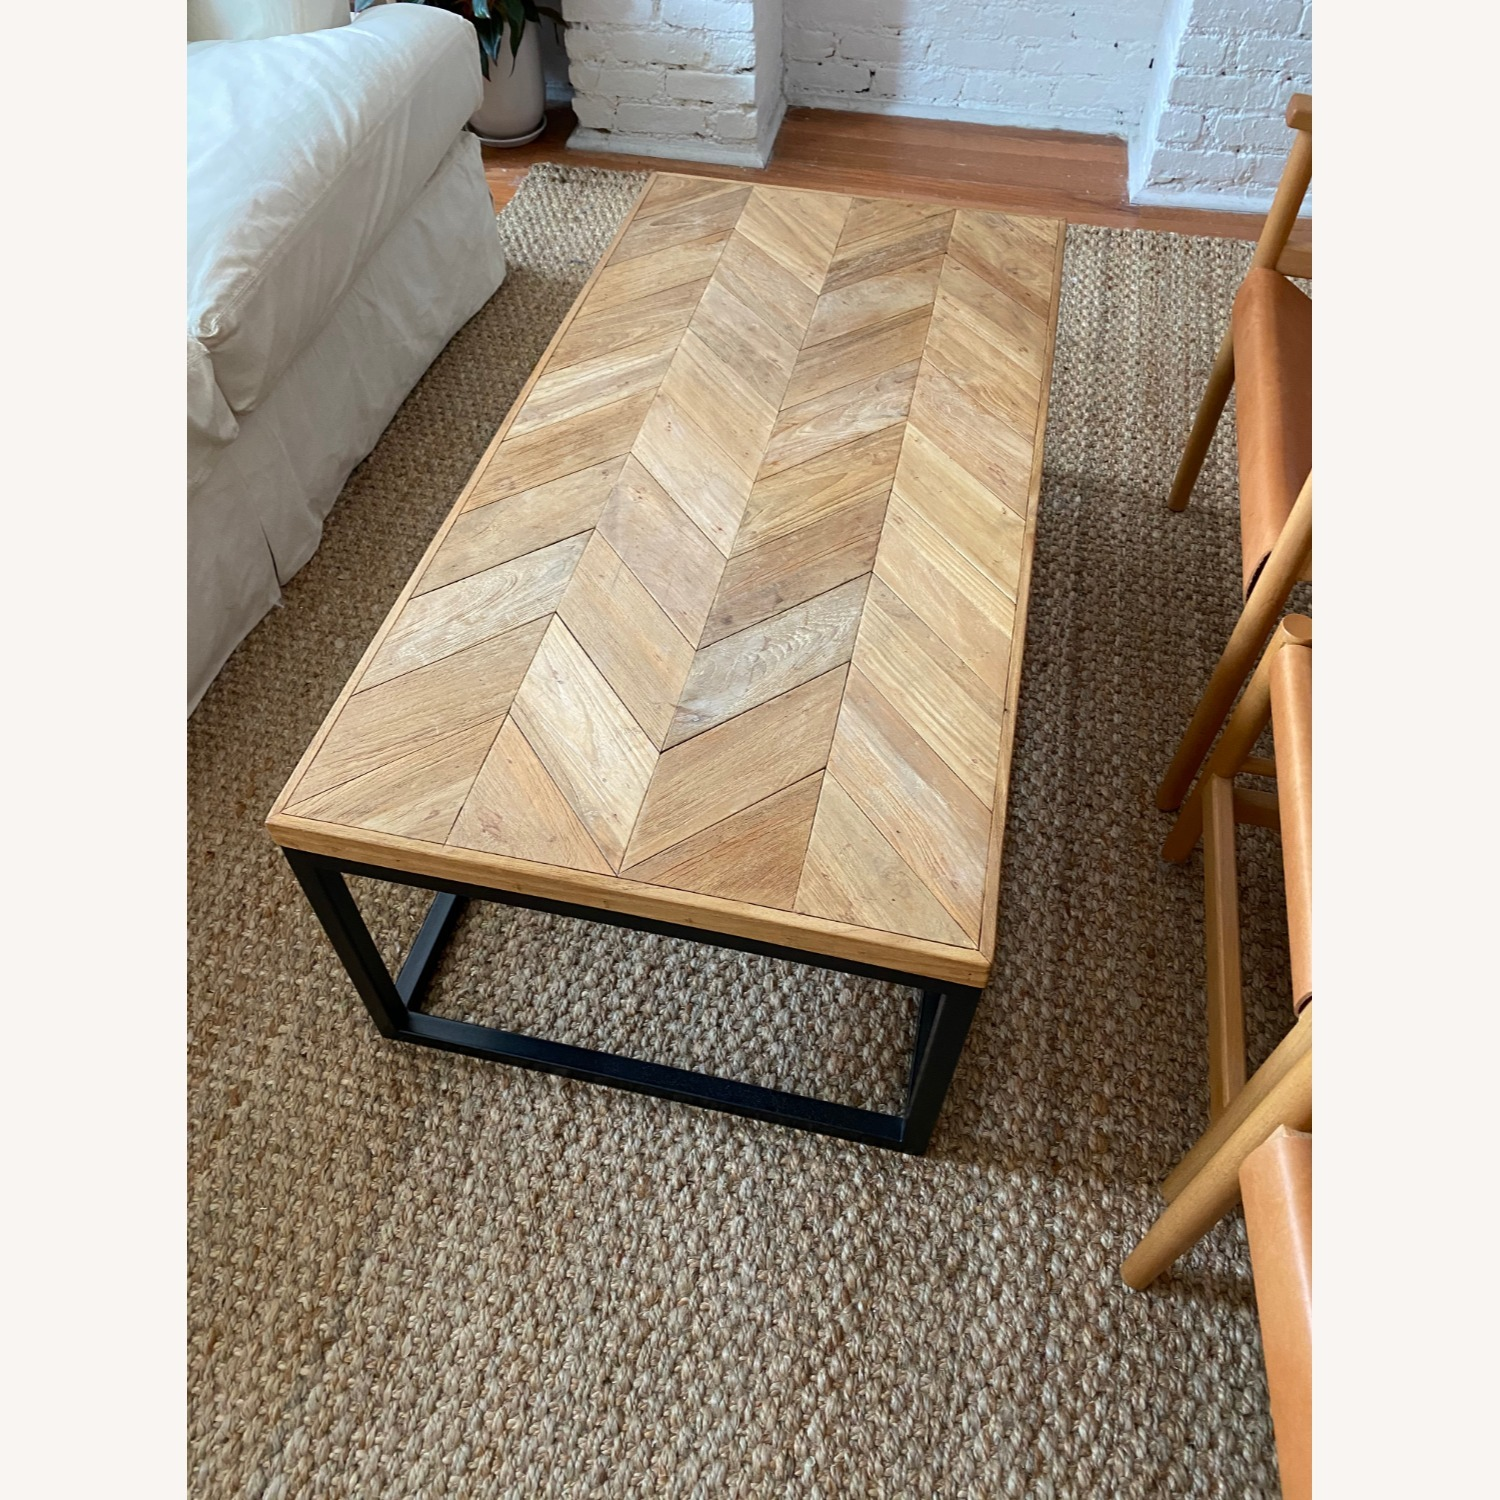 Crate & Barrel Mid Century Modern Coffee Table - image-5